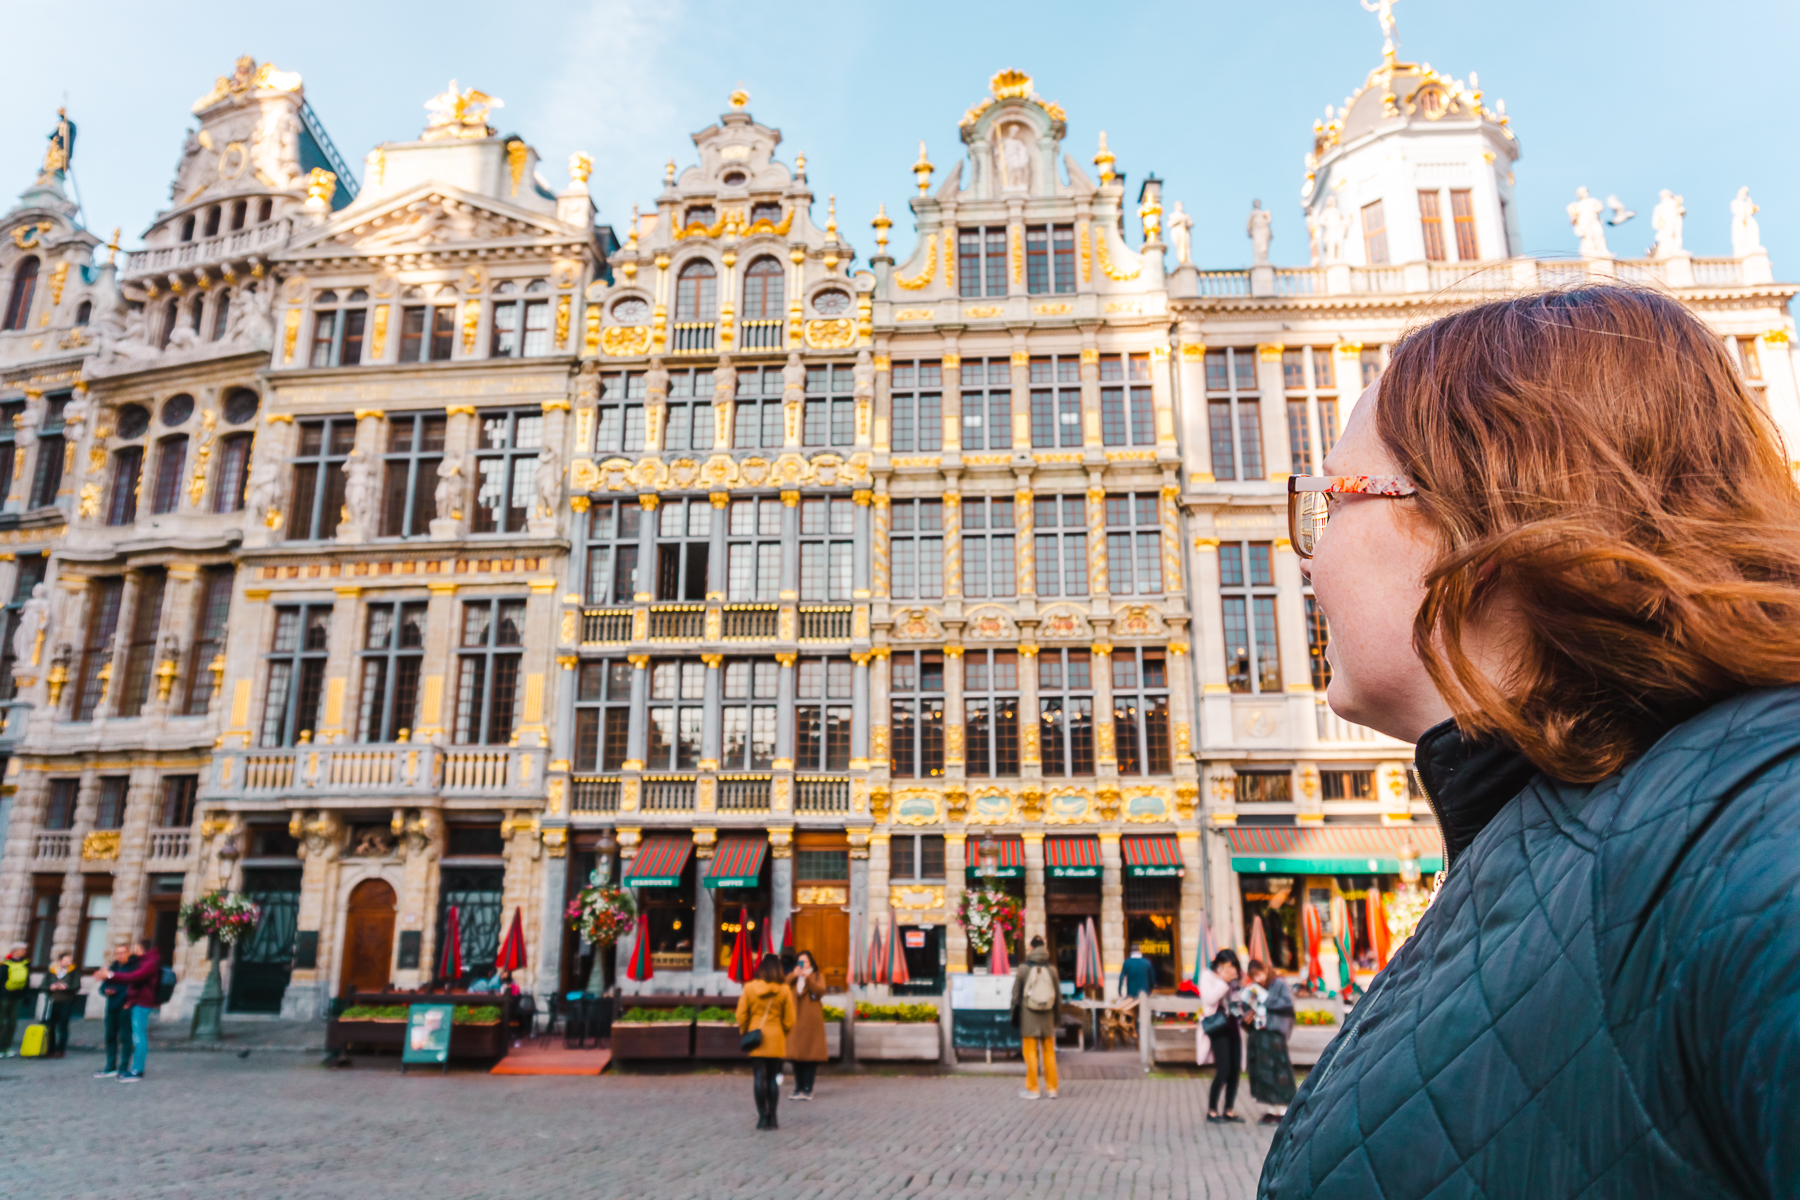 Things to do in Brussels, Belgium - visit Grand Place